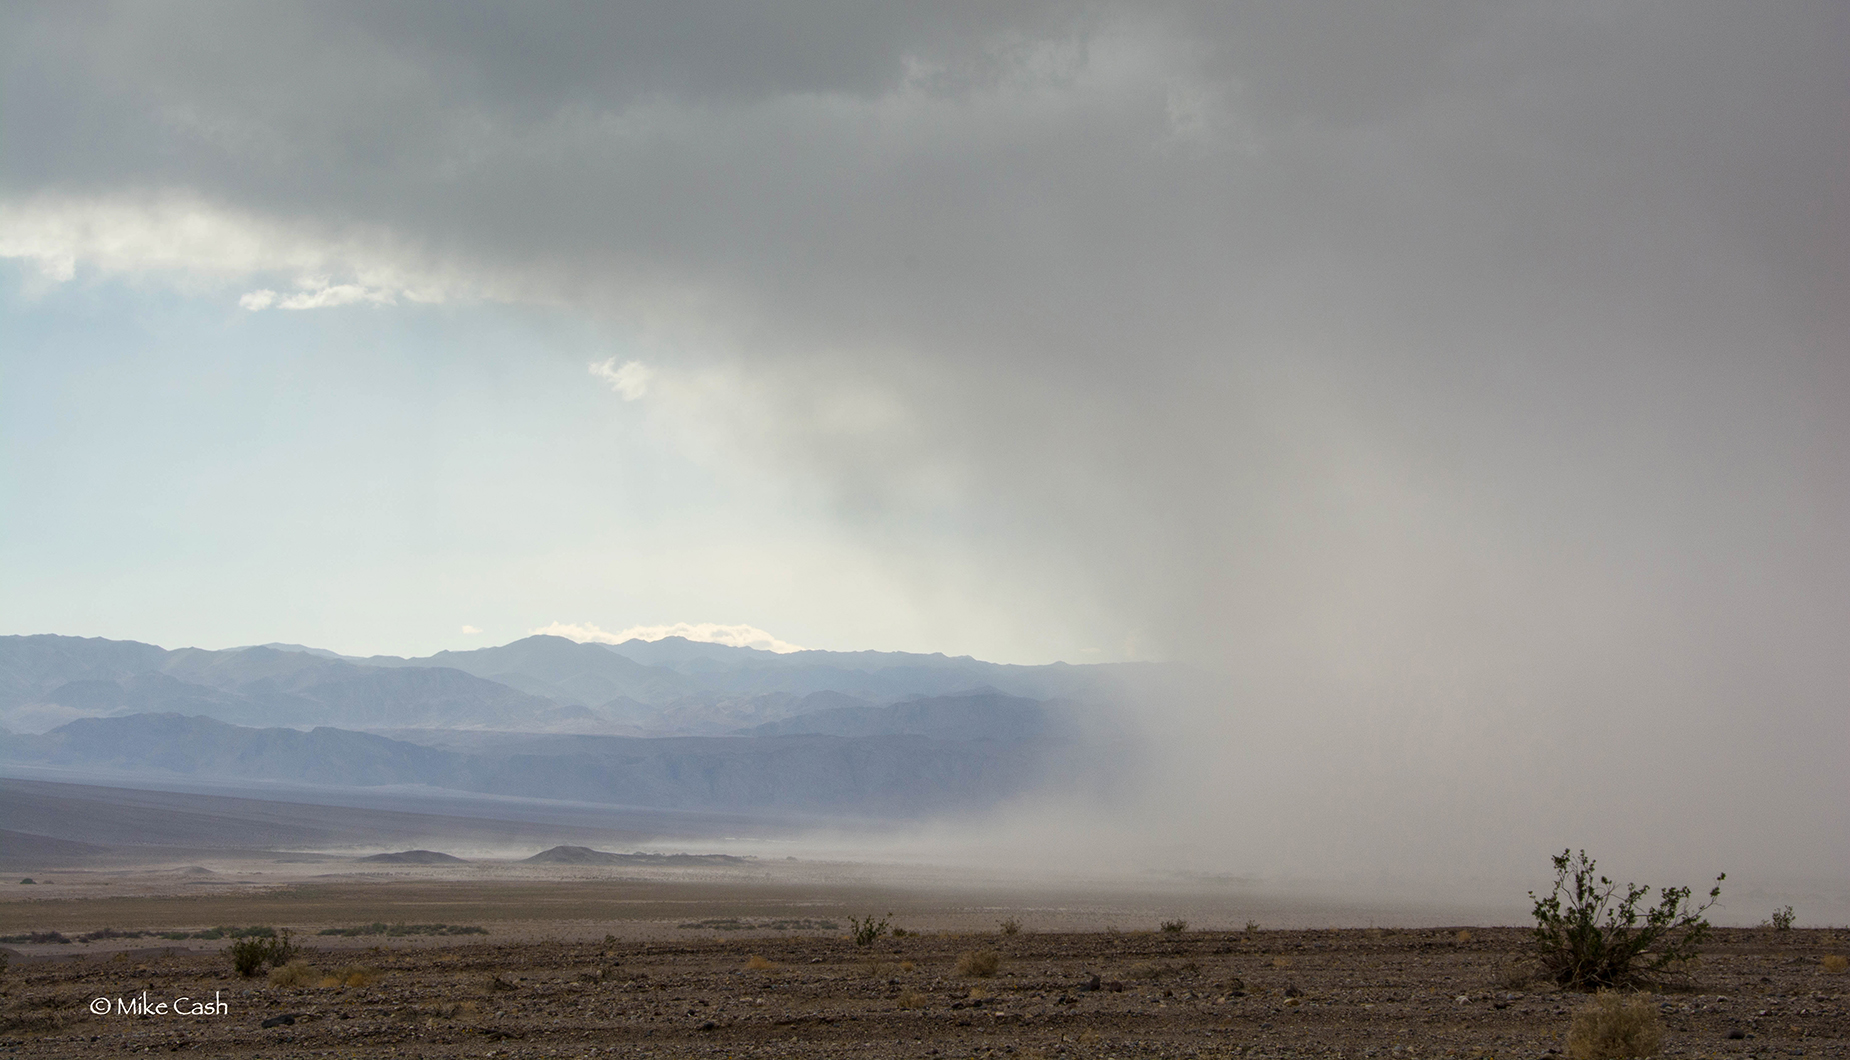 Edge of the sand storm.